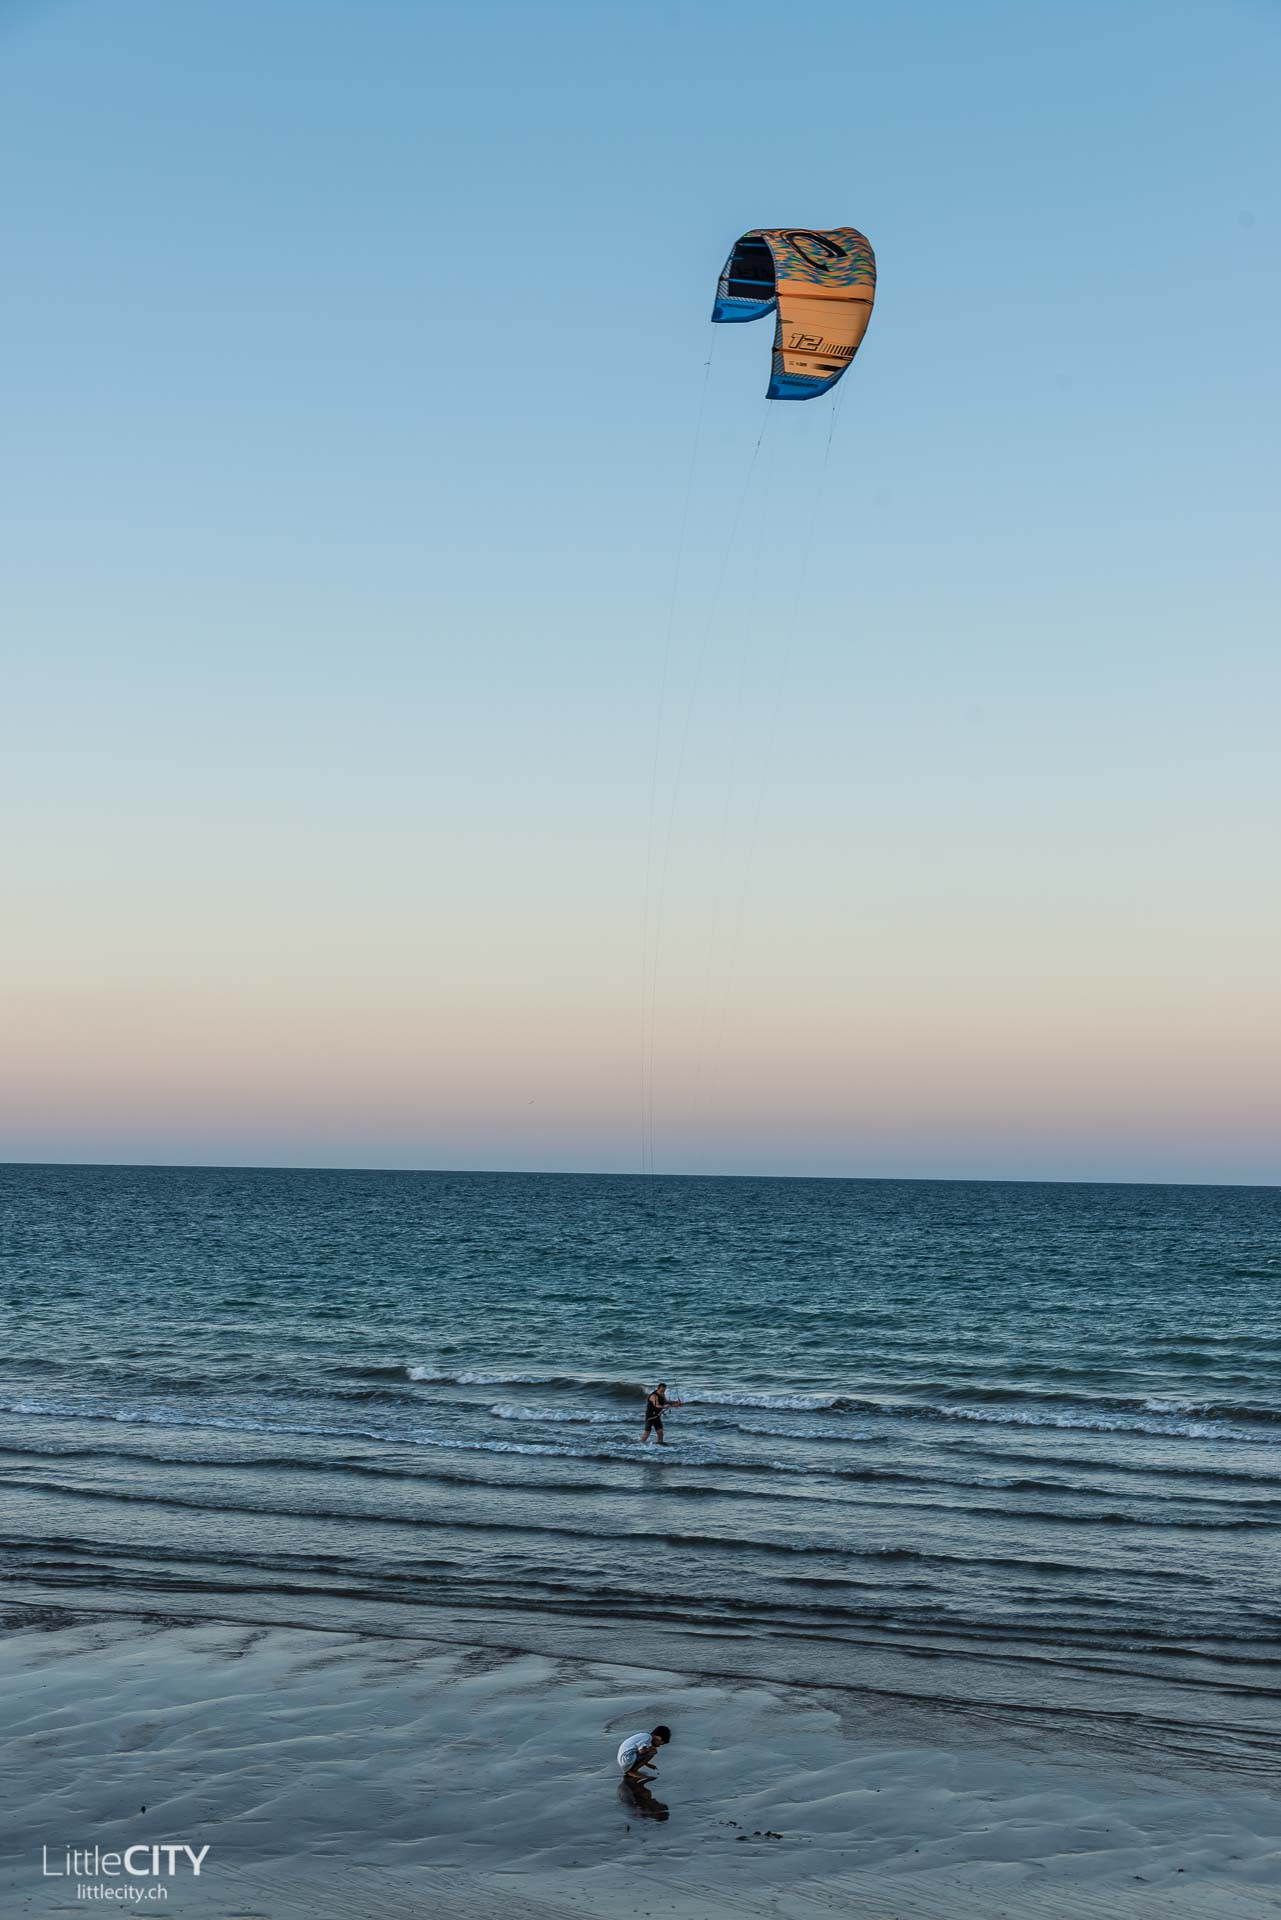 Oman Azaiba Beach Kite Surfen